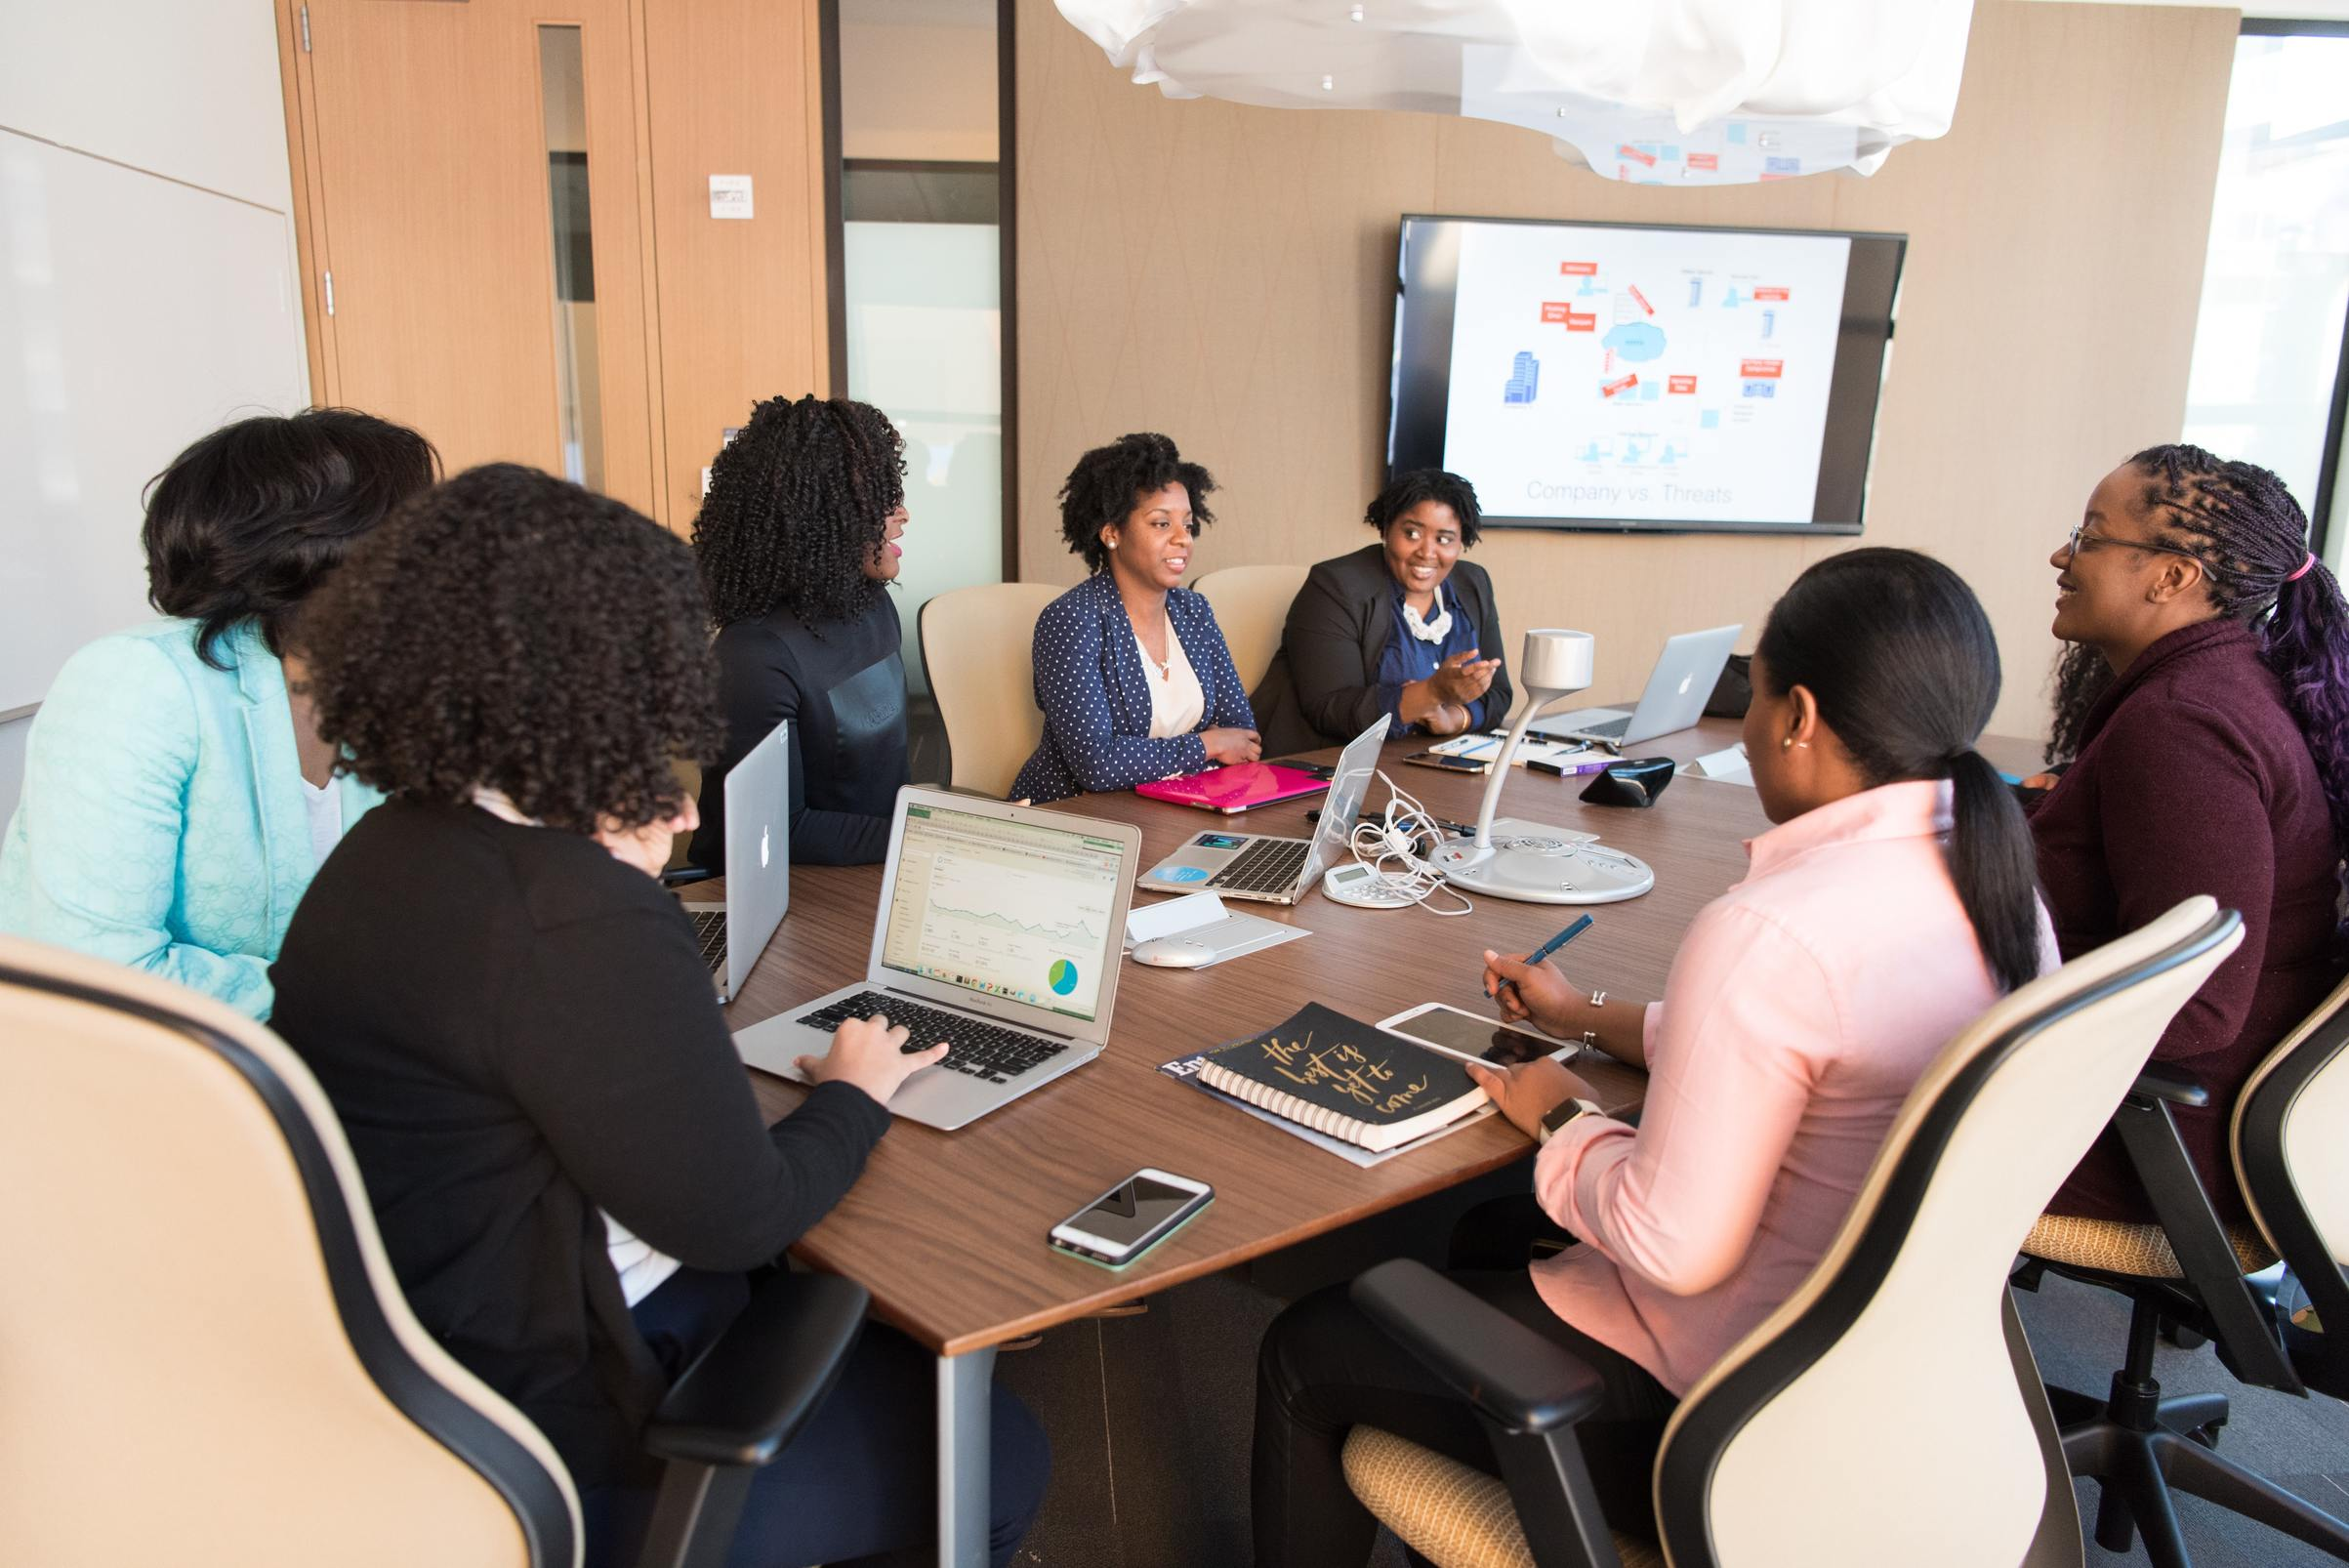 Photo of a group of women sitting at a table brainstorming ways to effectively implement their organizational change plans.